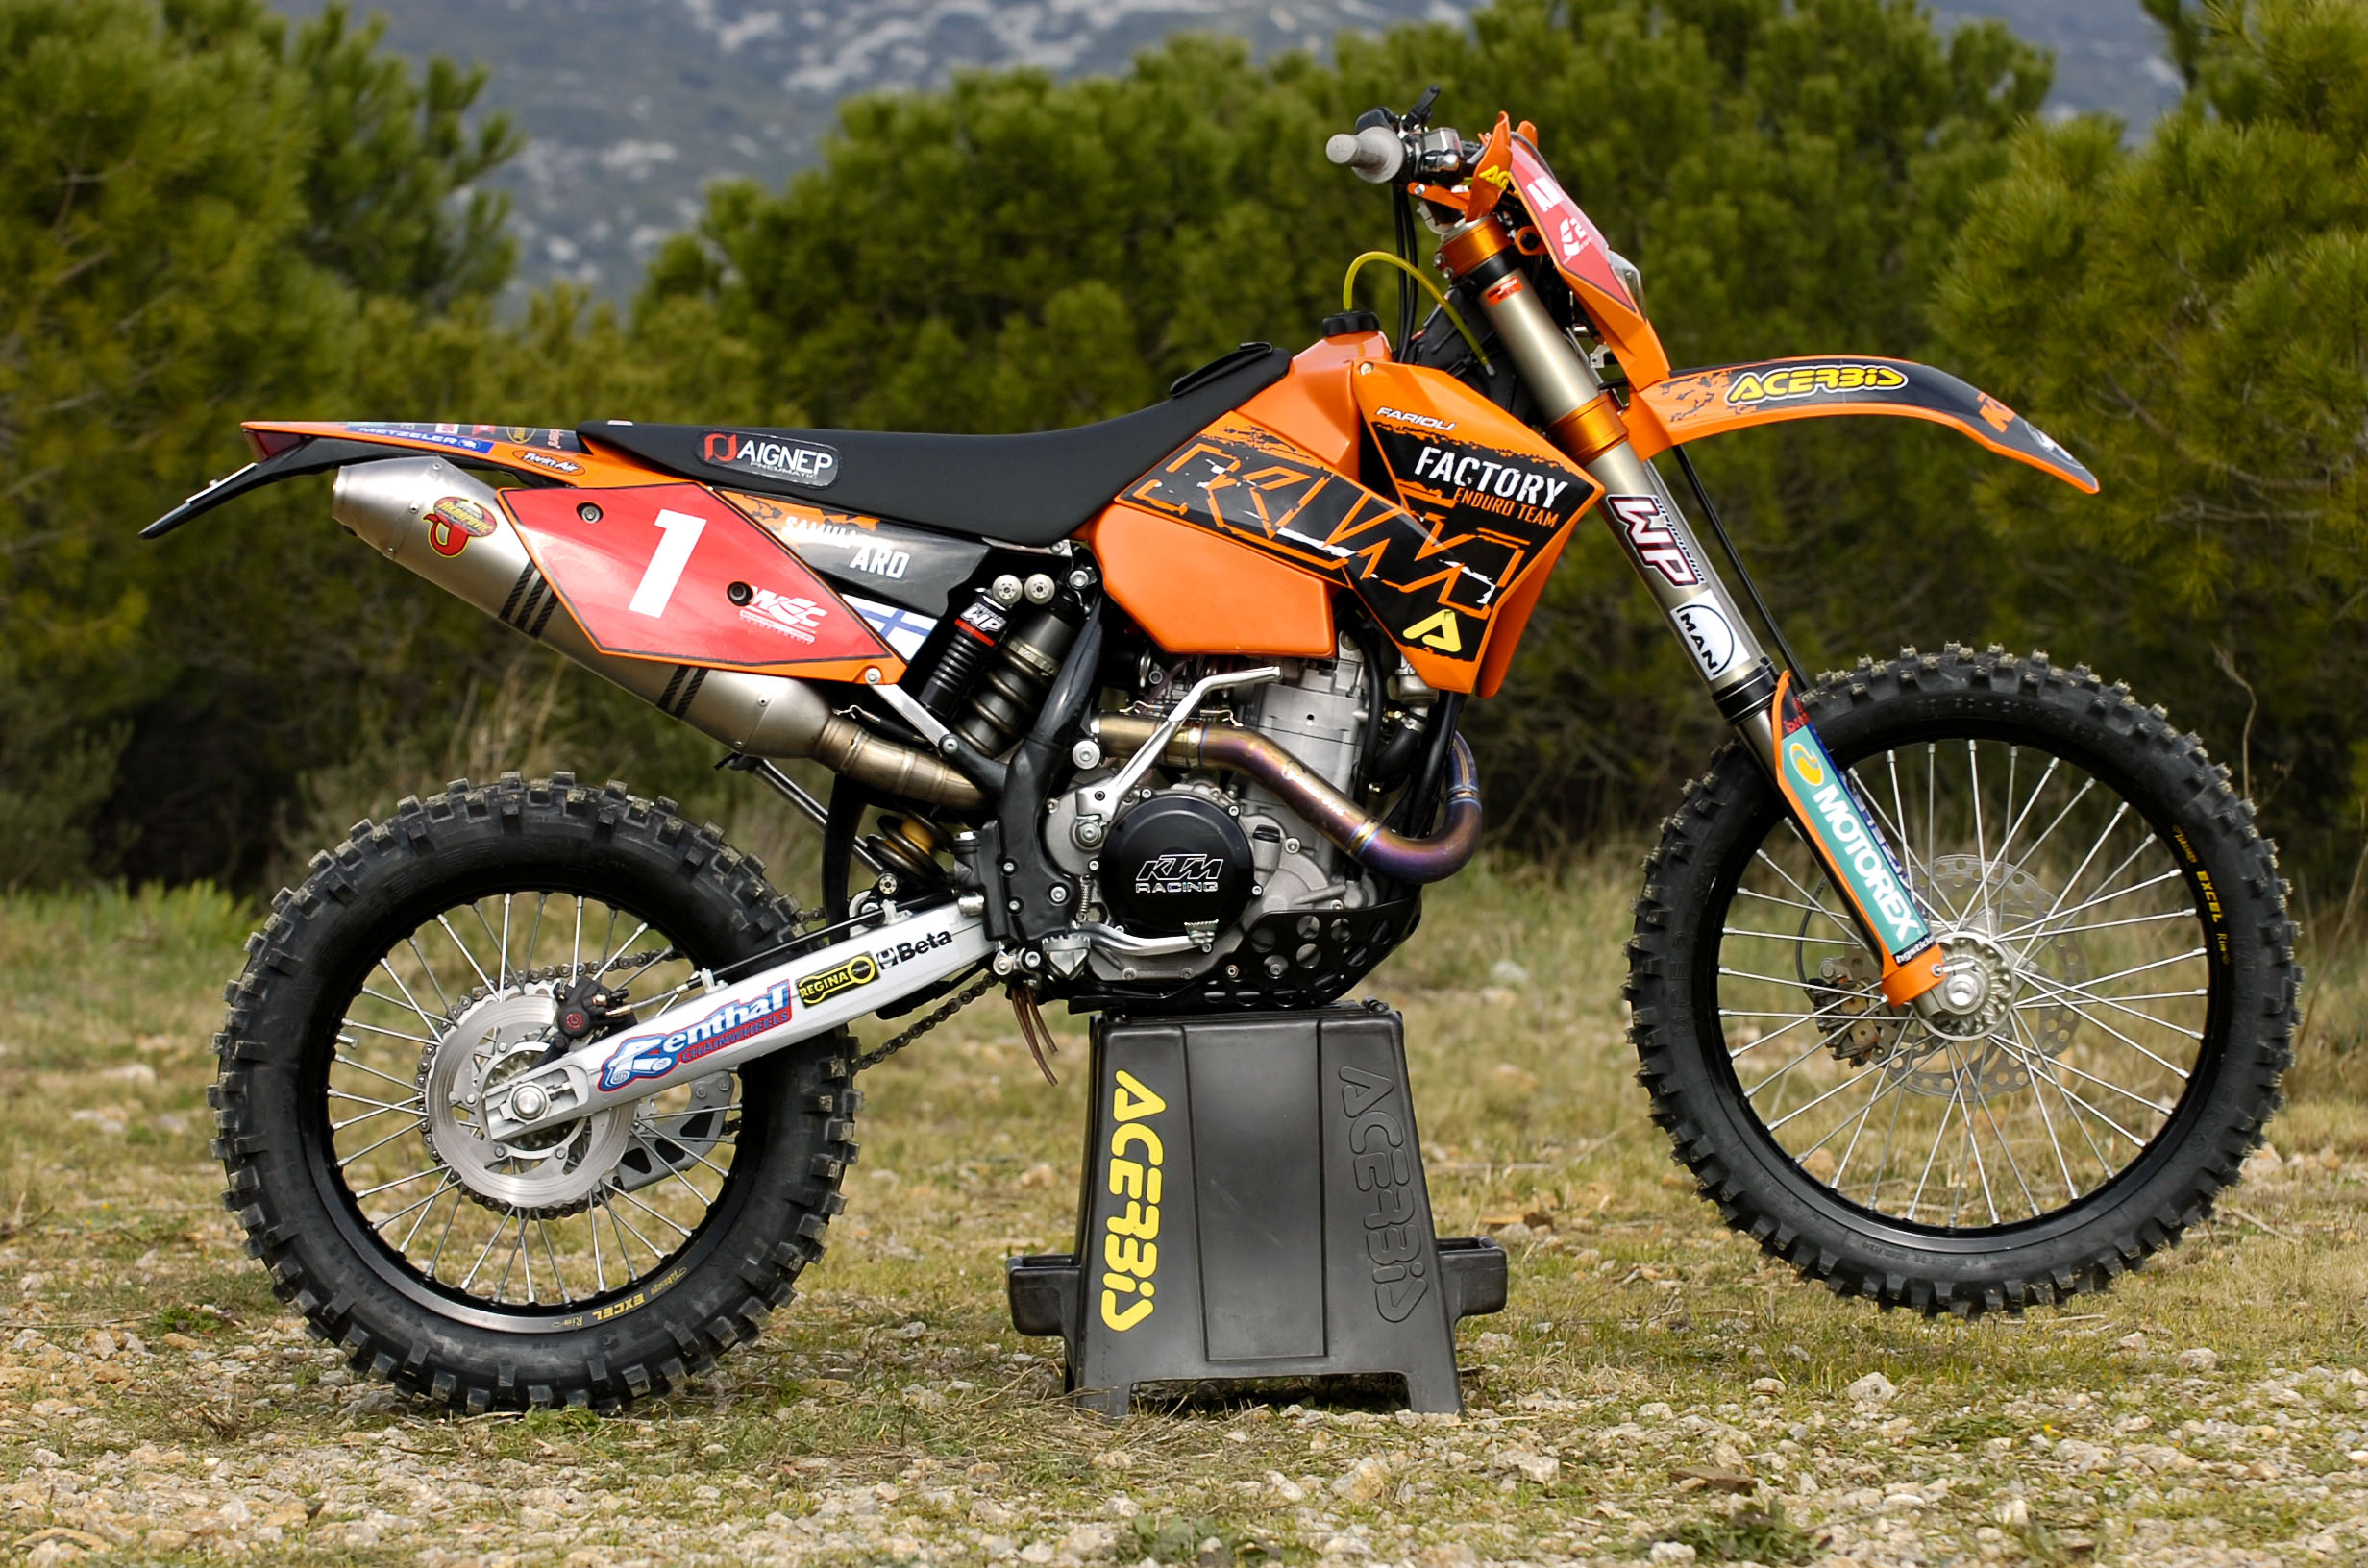 KTM 400 EXC Racing 2005 images #86403